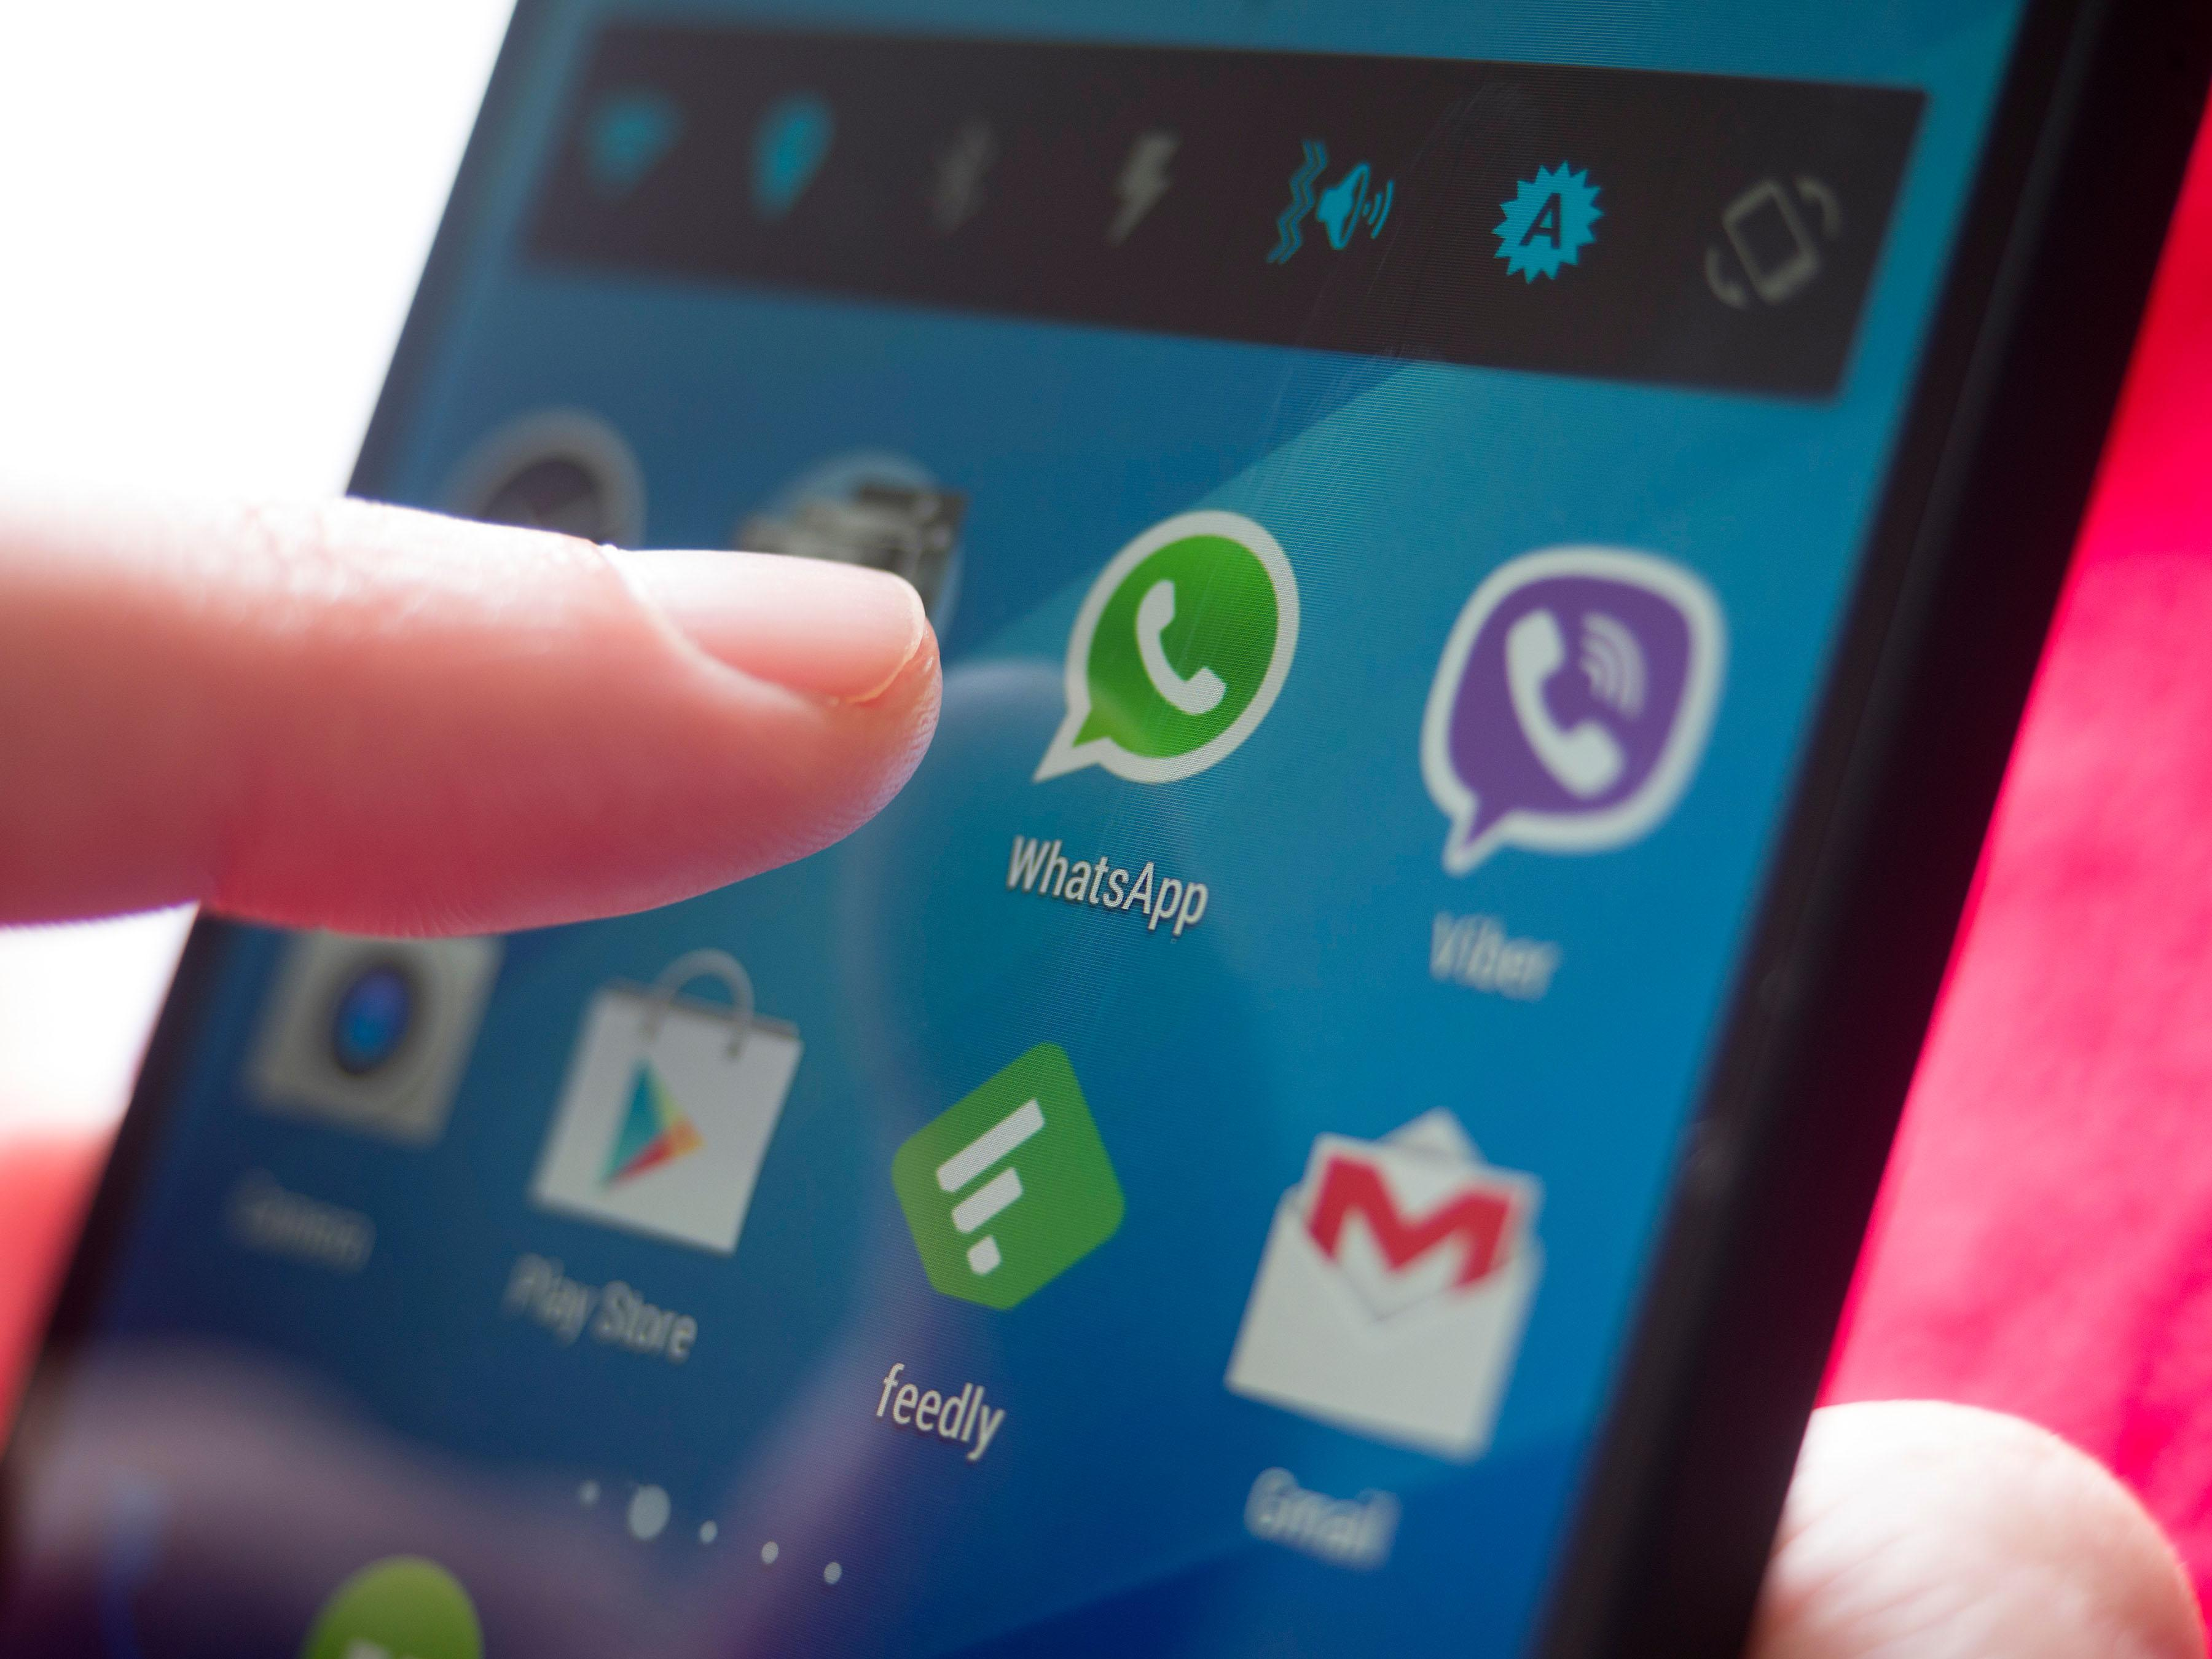 Investors will be able to send the digital cash via WhatsApp